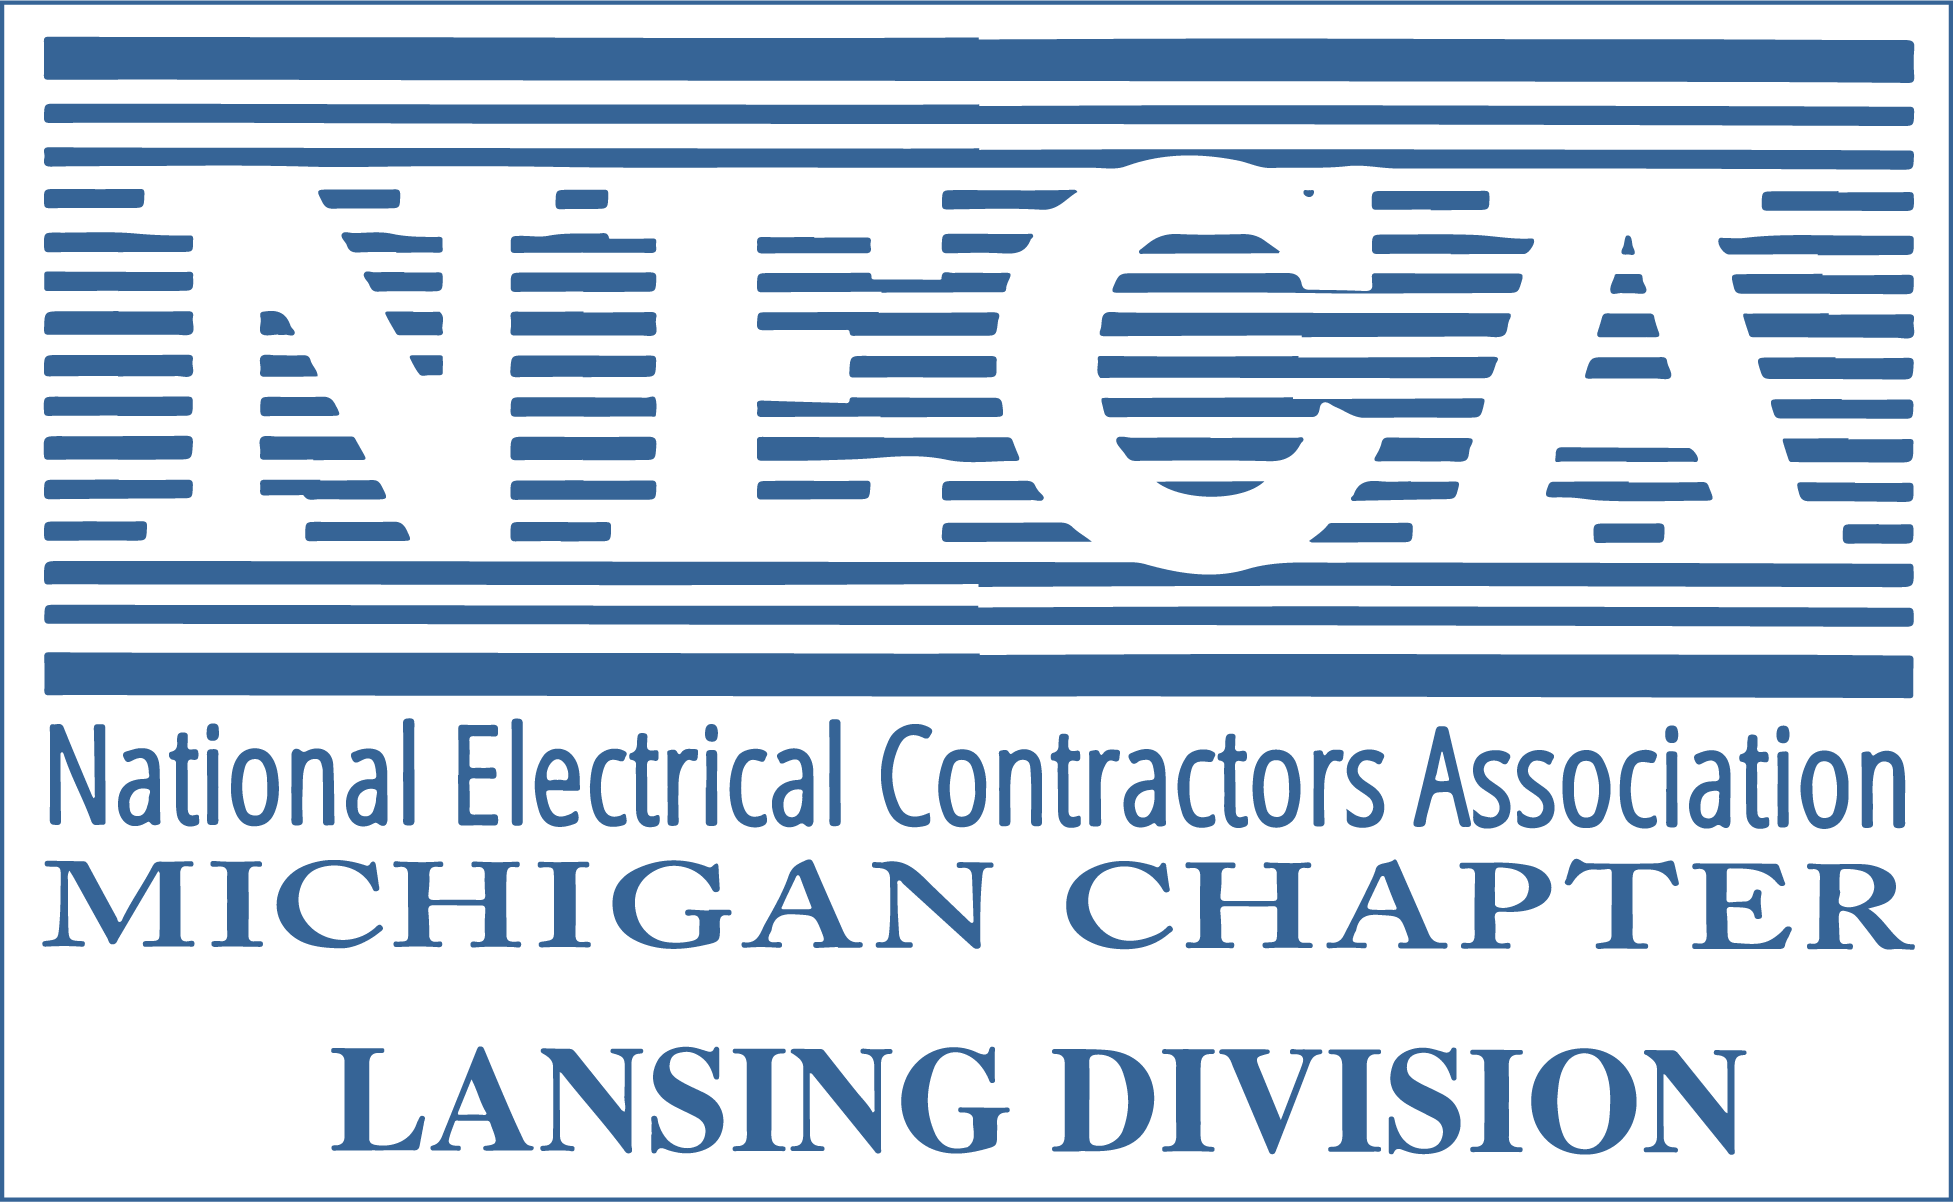 National Electrical Contractors Association, Michigan Chapter, Lansing Division